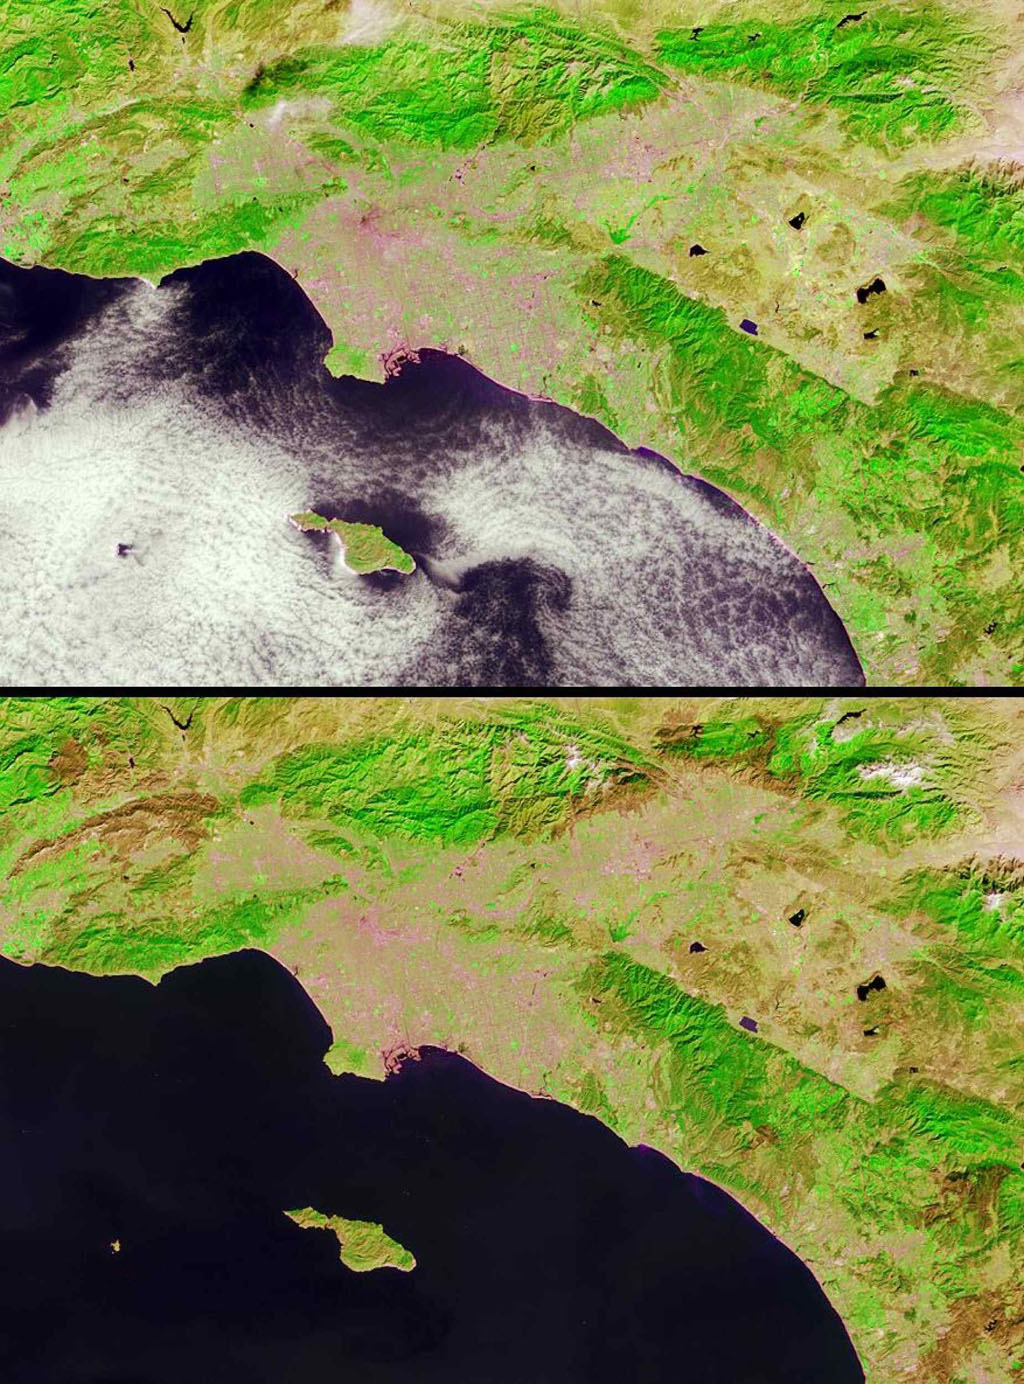 Brush fires consumed nearly 750,000 acres across Southern California between October 21 and November 18, 2003. Burn scars and vegetation changes wrought by the fires are illustrated in these false-color images from NASA's Terra spacecraft.